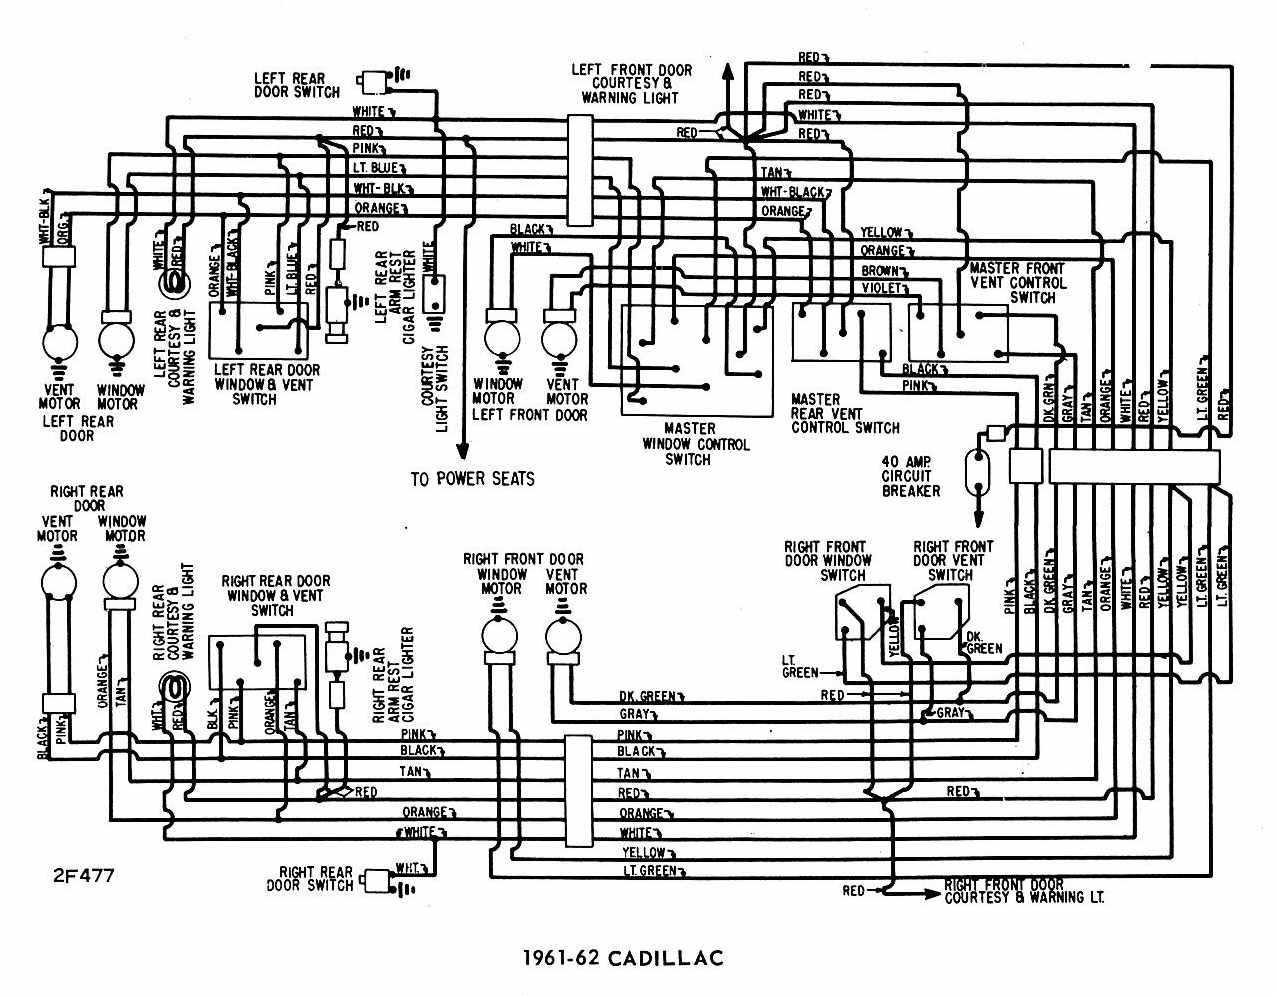 2002 Buick Century Power Window Wiring Diagram Library 1992 Lesabre Stereo Free Download 2000 Trusted 2001 Regal Rear Door Actuator